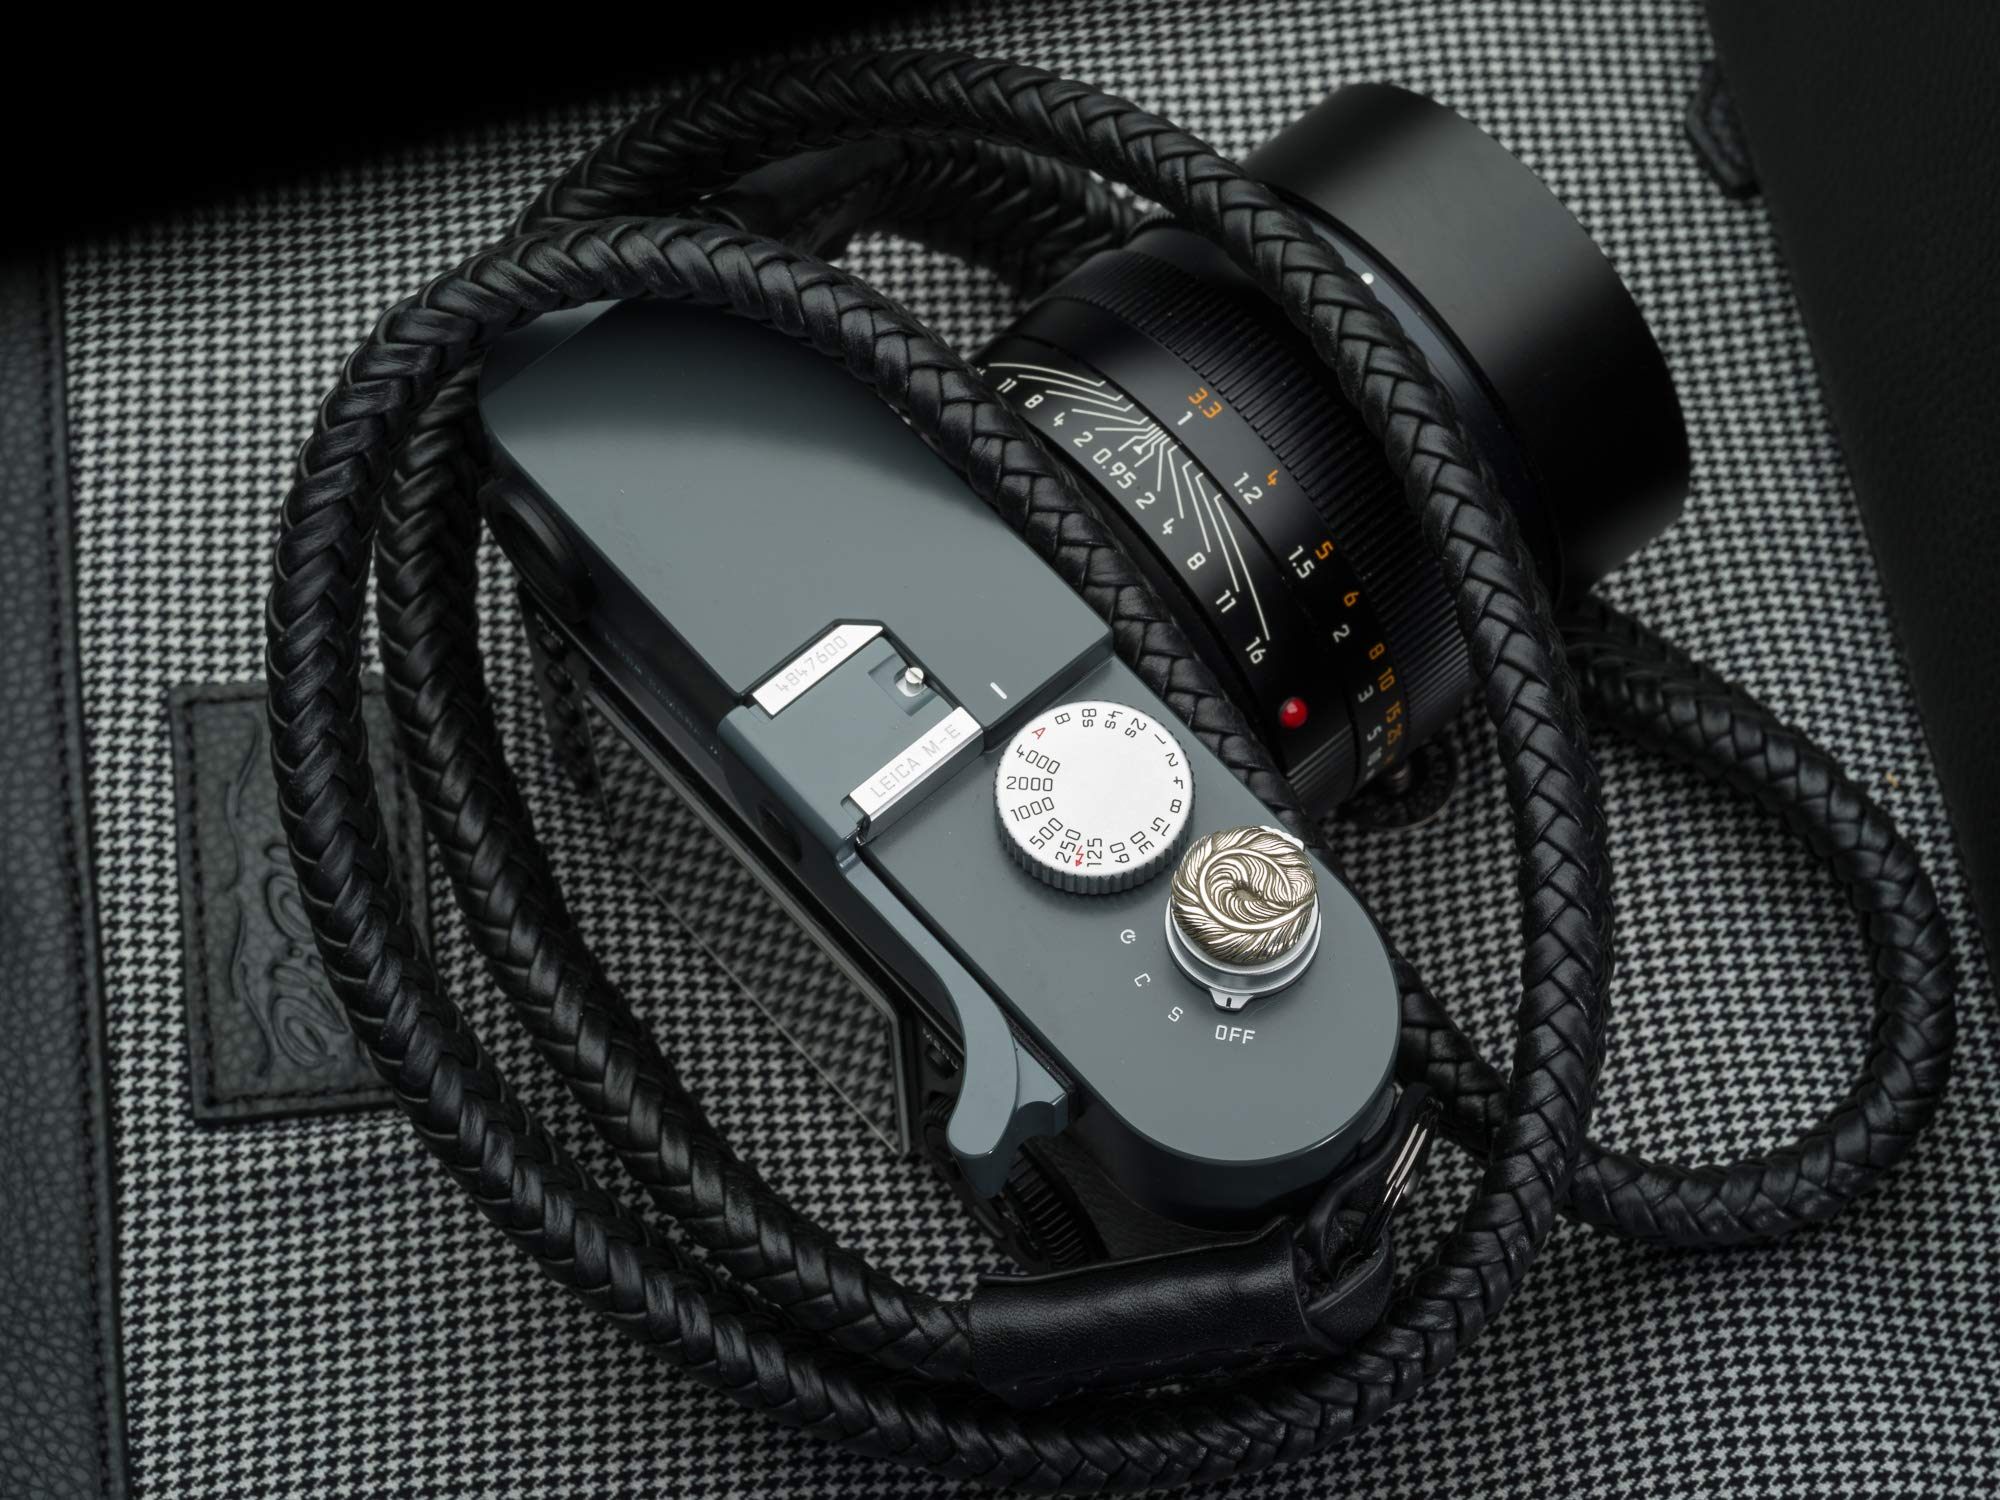 Soft Shutter Release Button Eagle Feather Sterling Silver Handcrafted by Jay Tsujimara fits Leica M240 variants and M10 by Jay Tsujimura